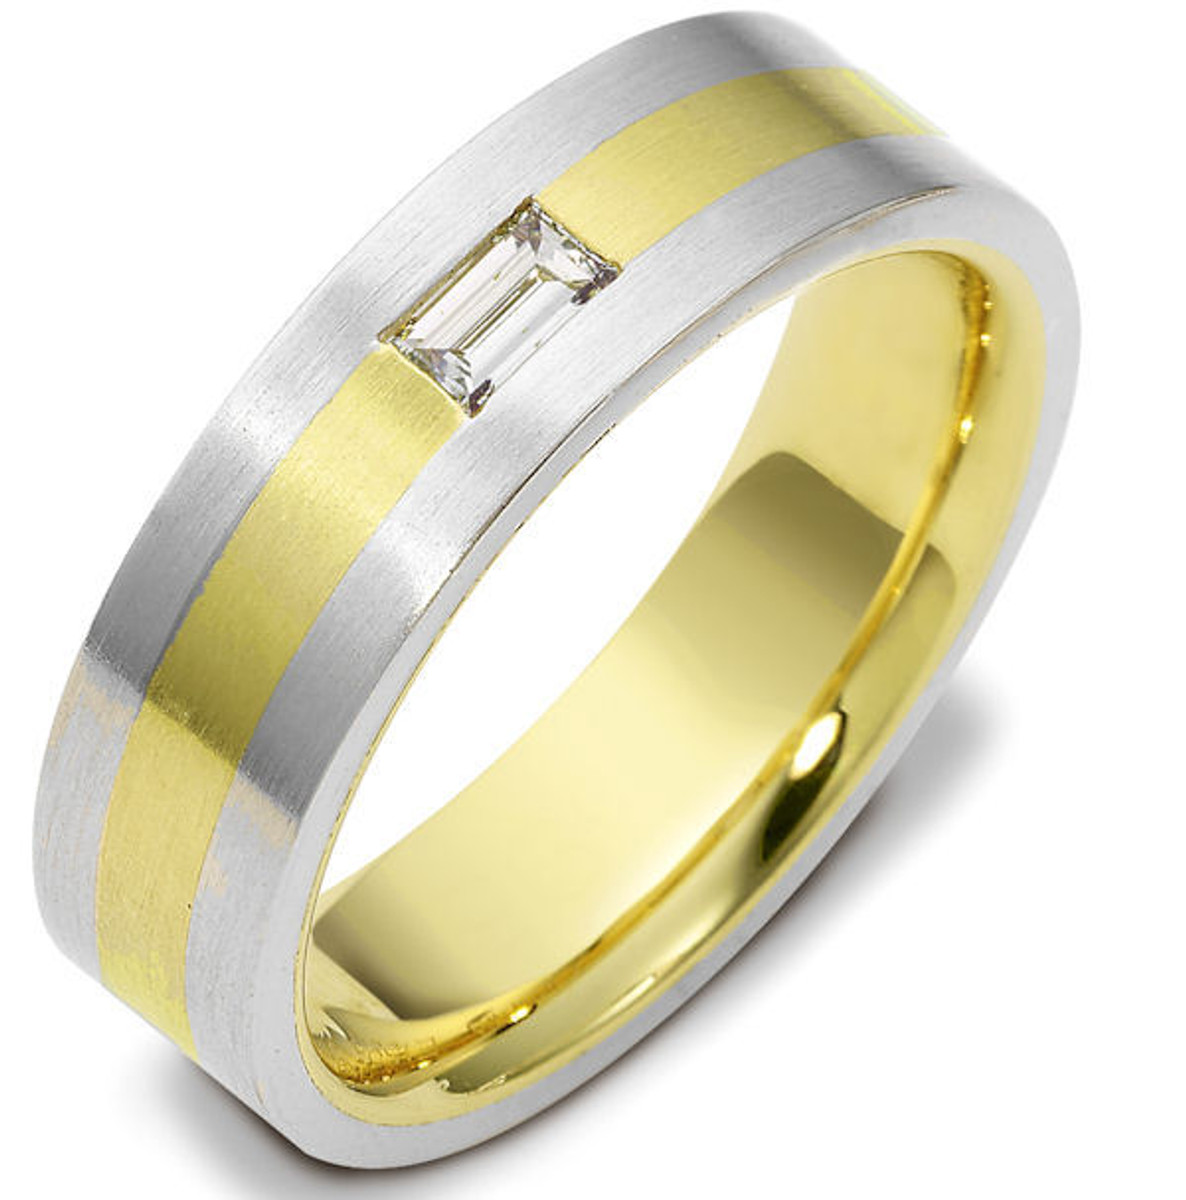 14Kt Two-Tone Gold Straight Baguette Diamond Wedding Ring